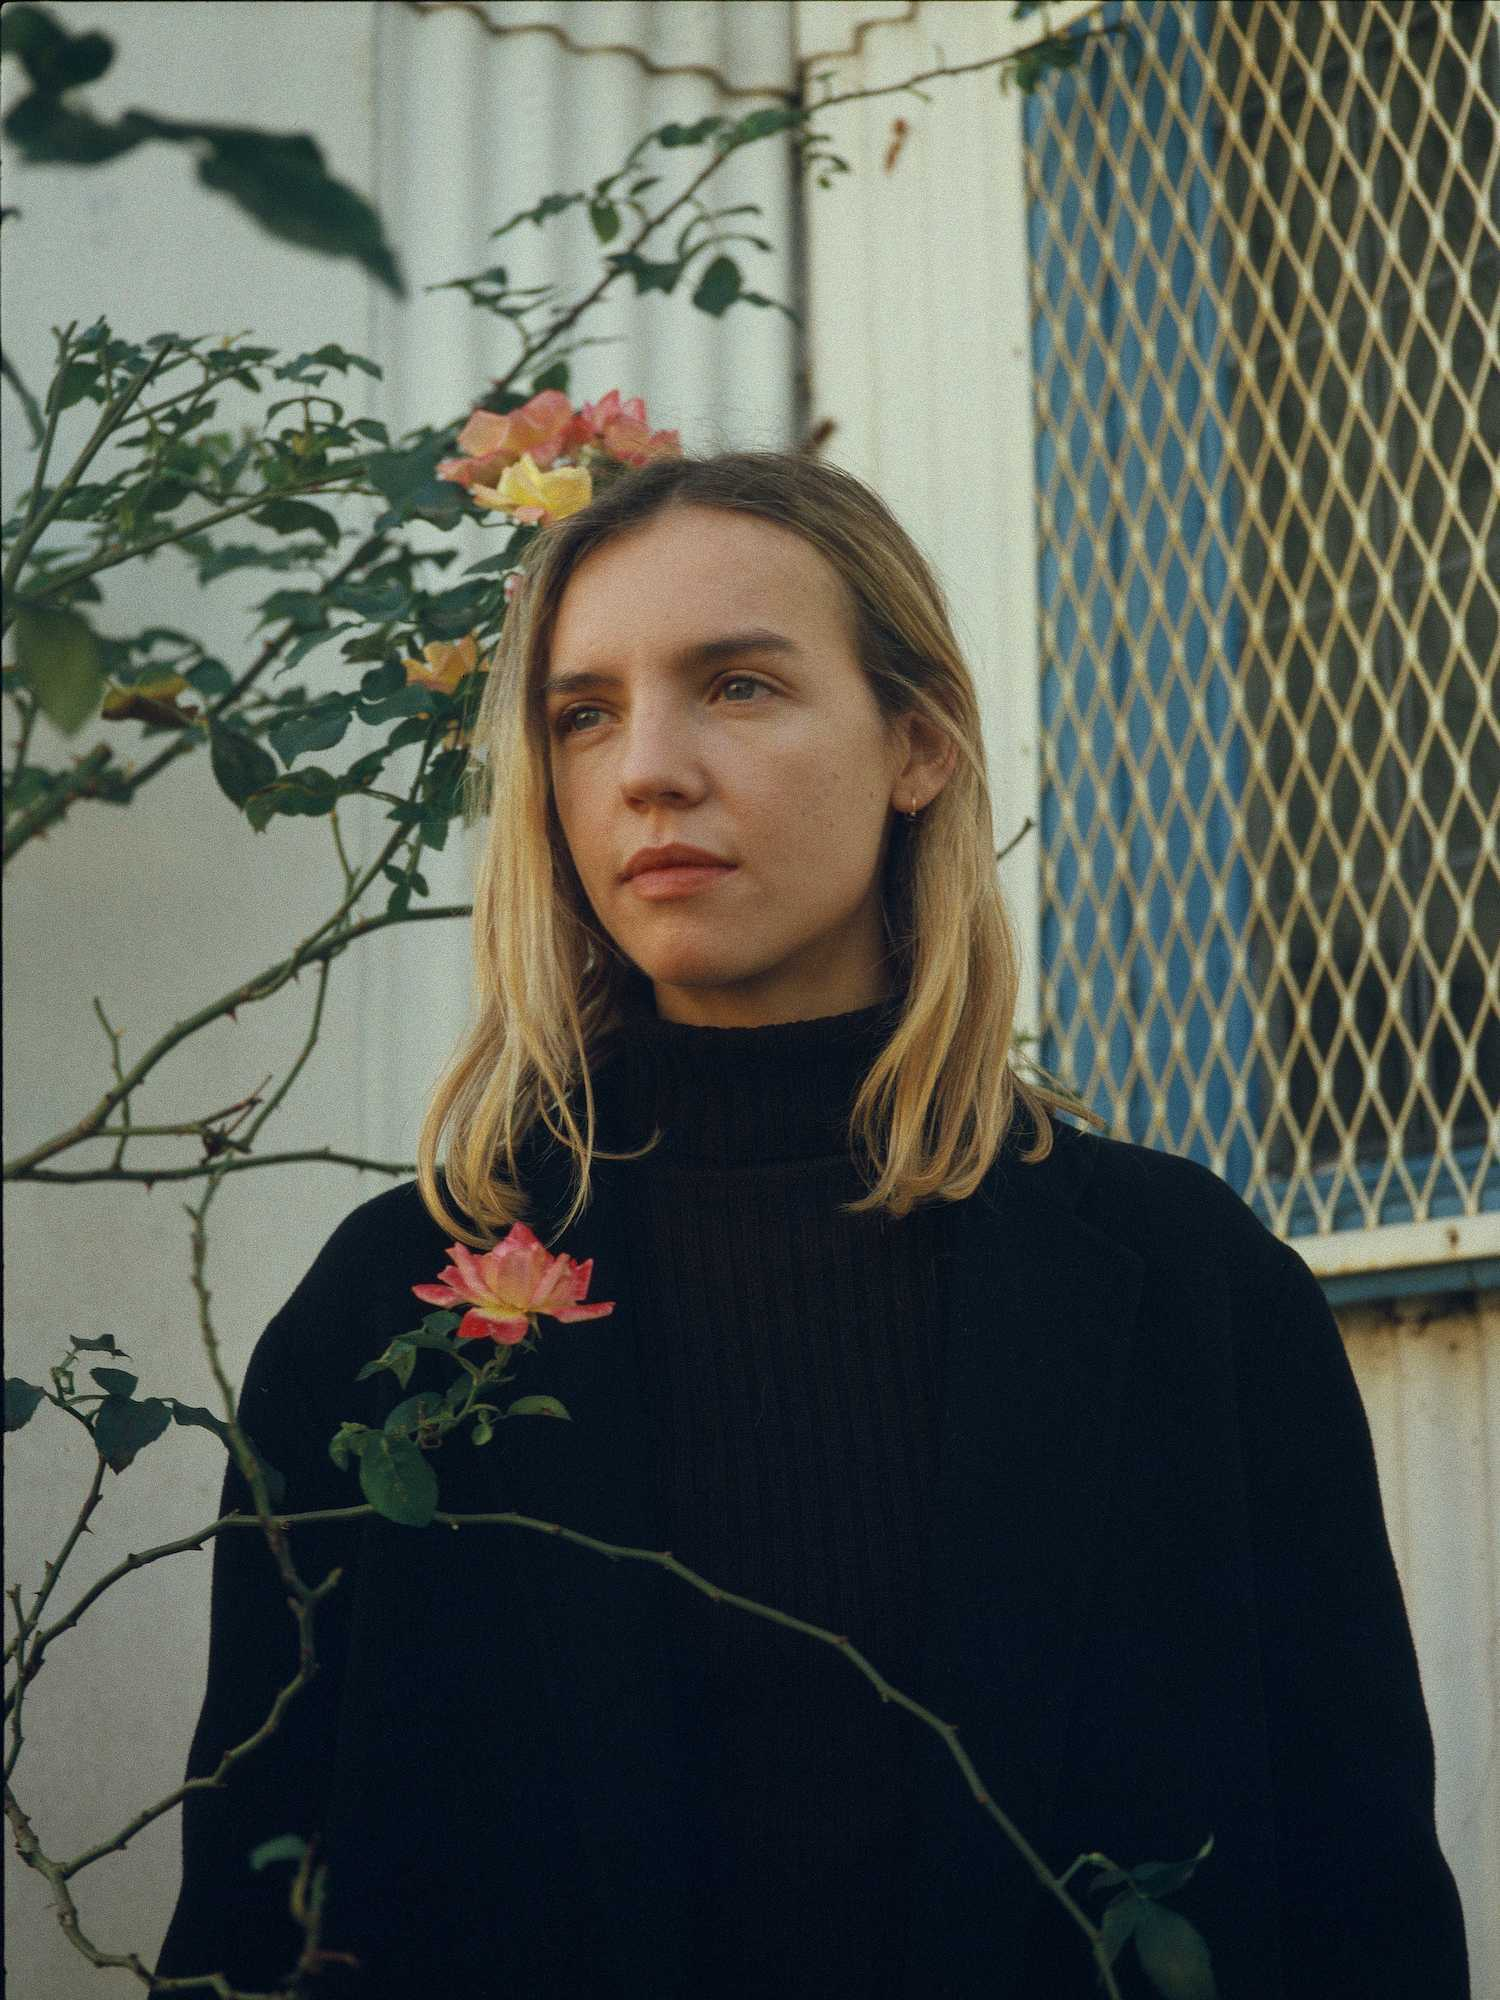 Float on: The Japanese House